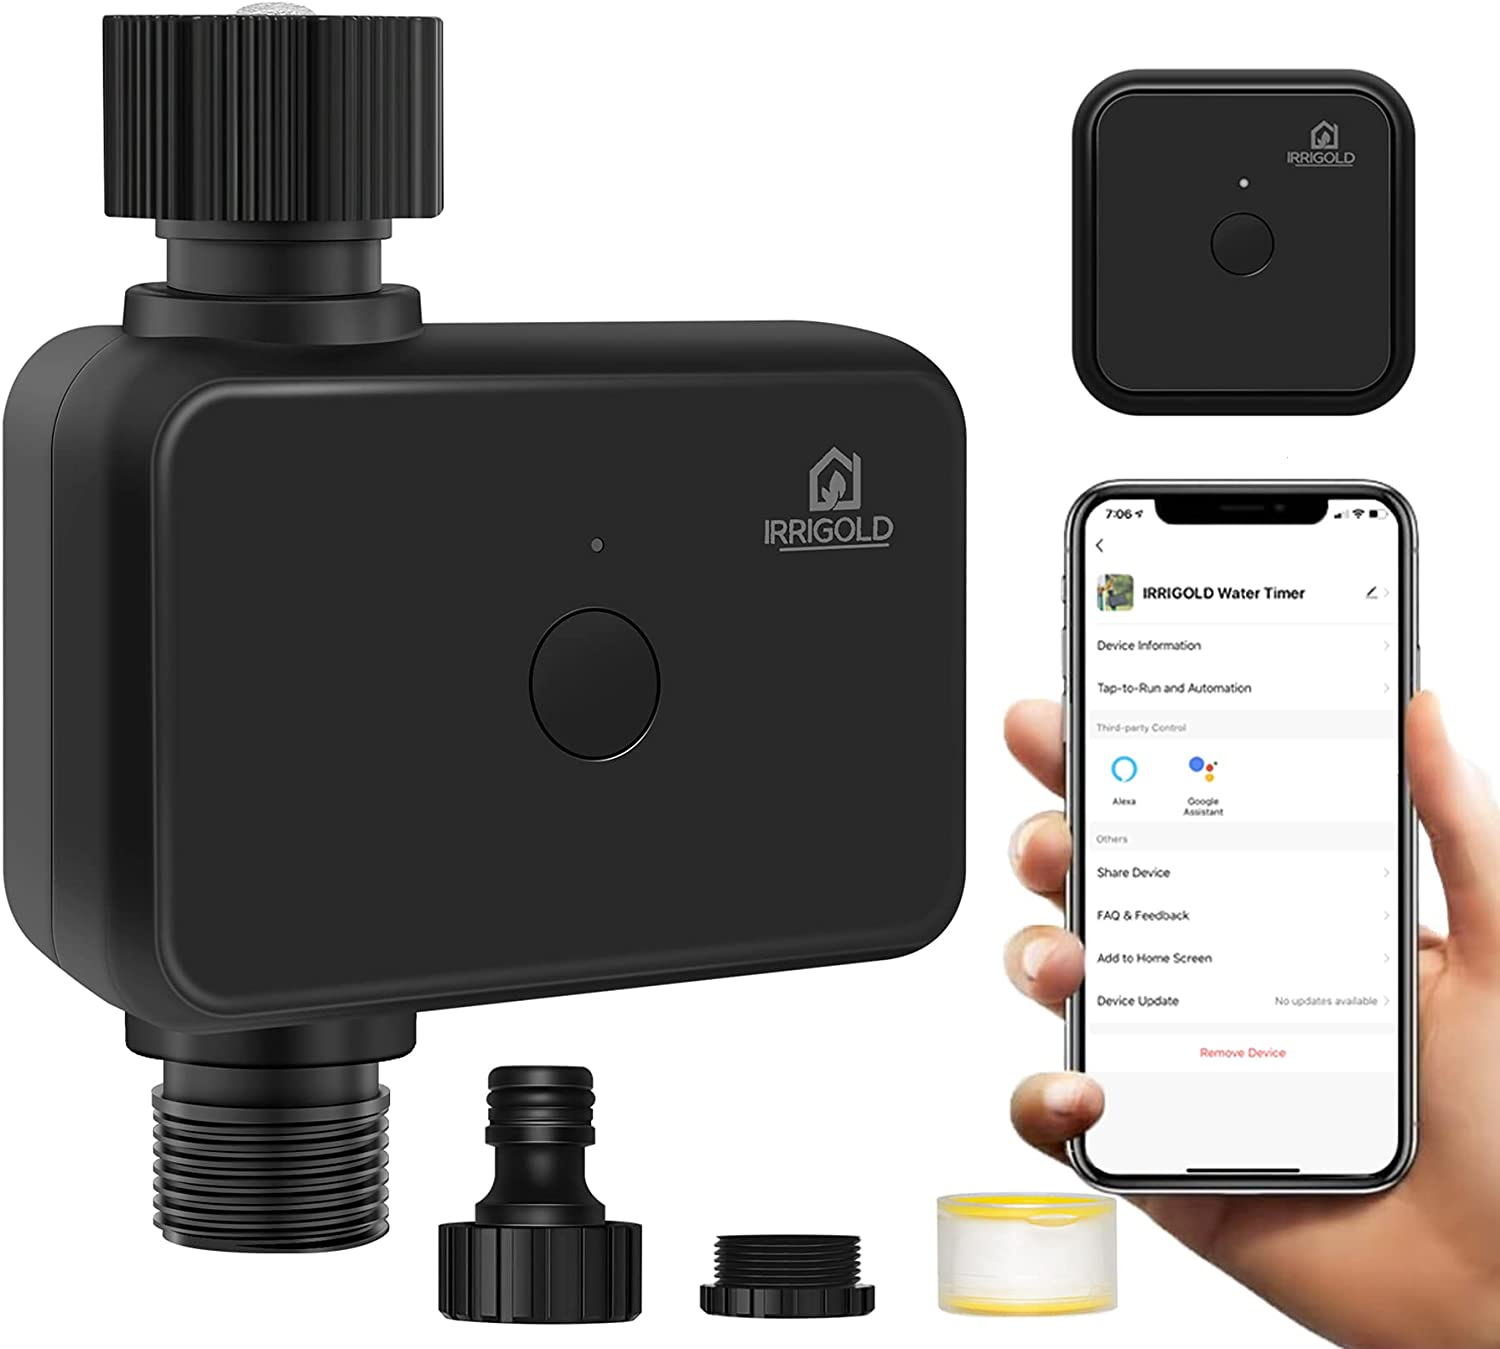 IRRIGOLD WiFi Water Timer, Smart Sprinkler Timer Works with Alexa and Google Assistant via Wireless Hub, Rain Delay Irrigation Timer with IP55 Waterproof for Sprinkler/Garden/Hose Faucet /Greenhouse